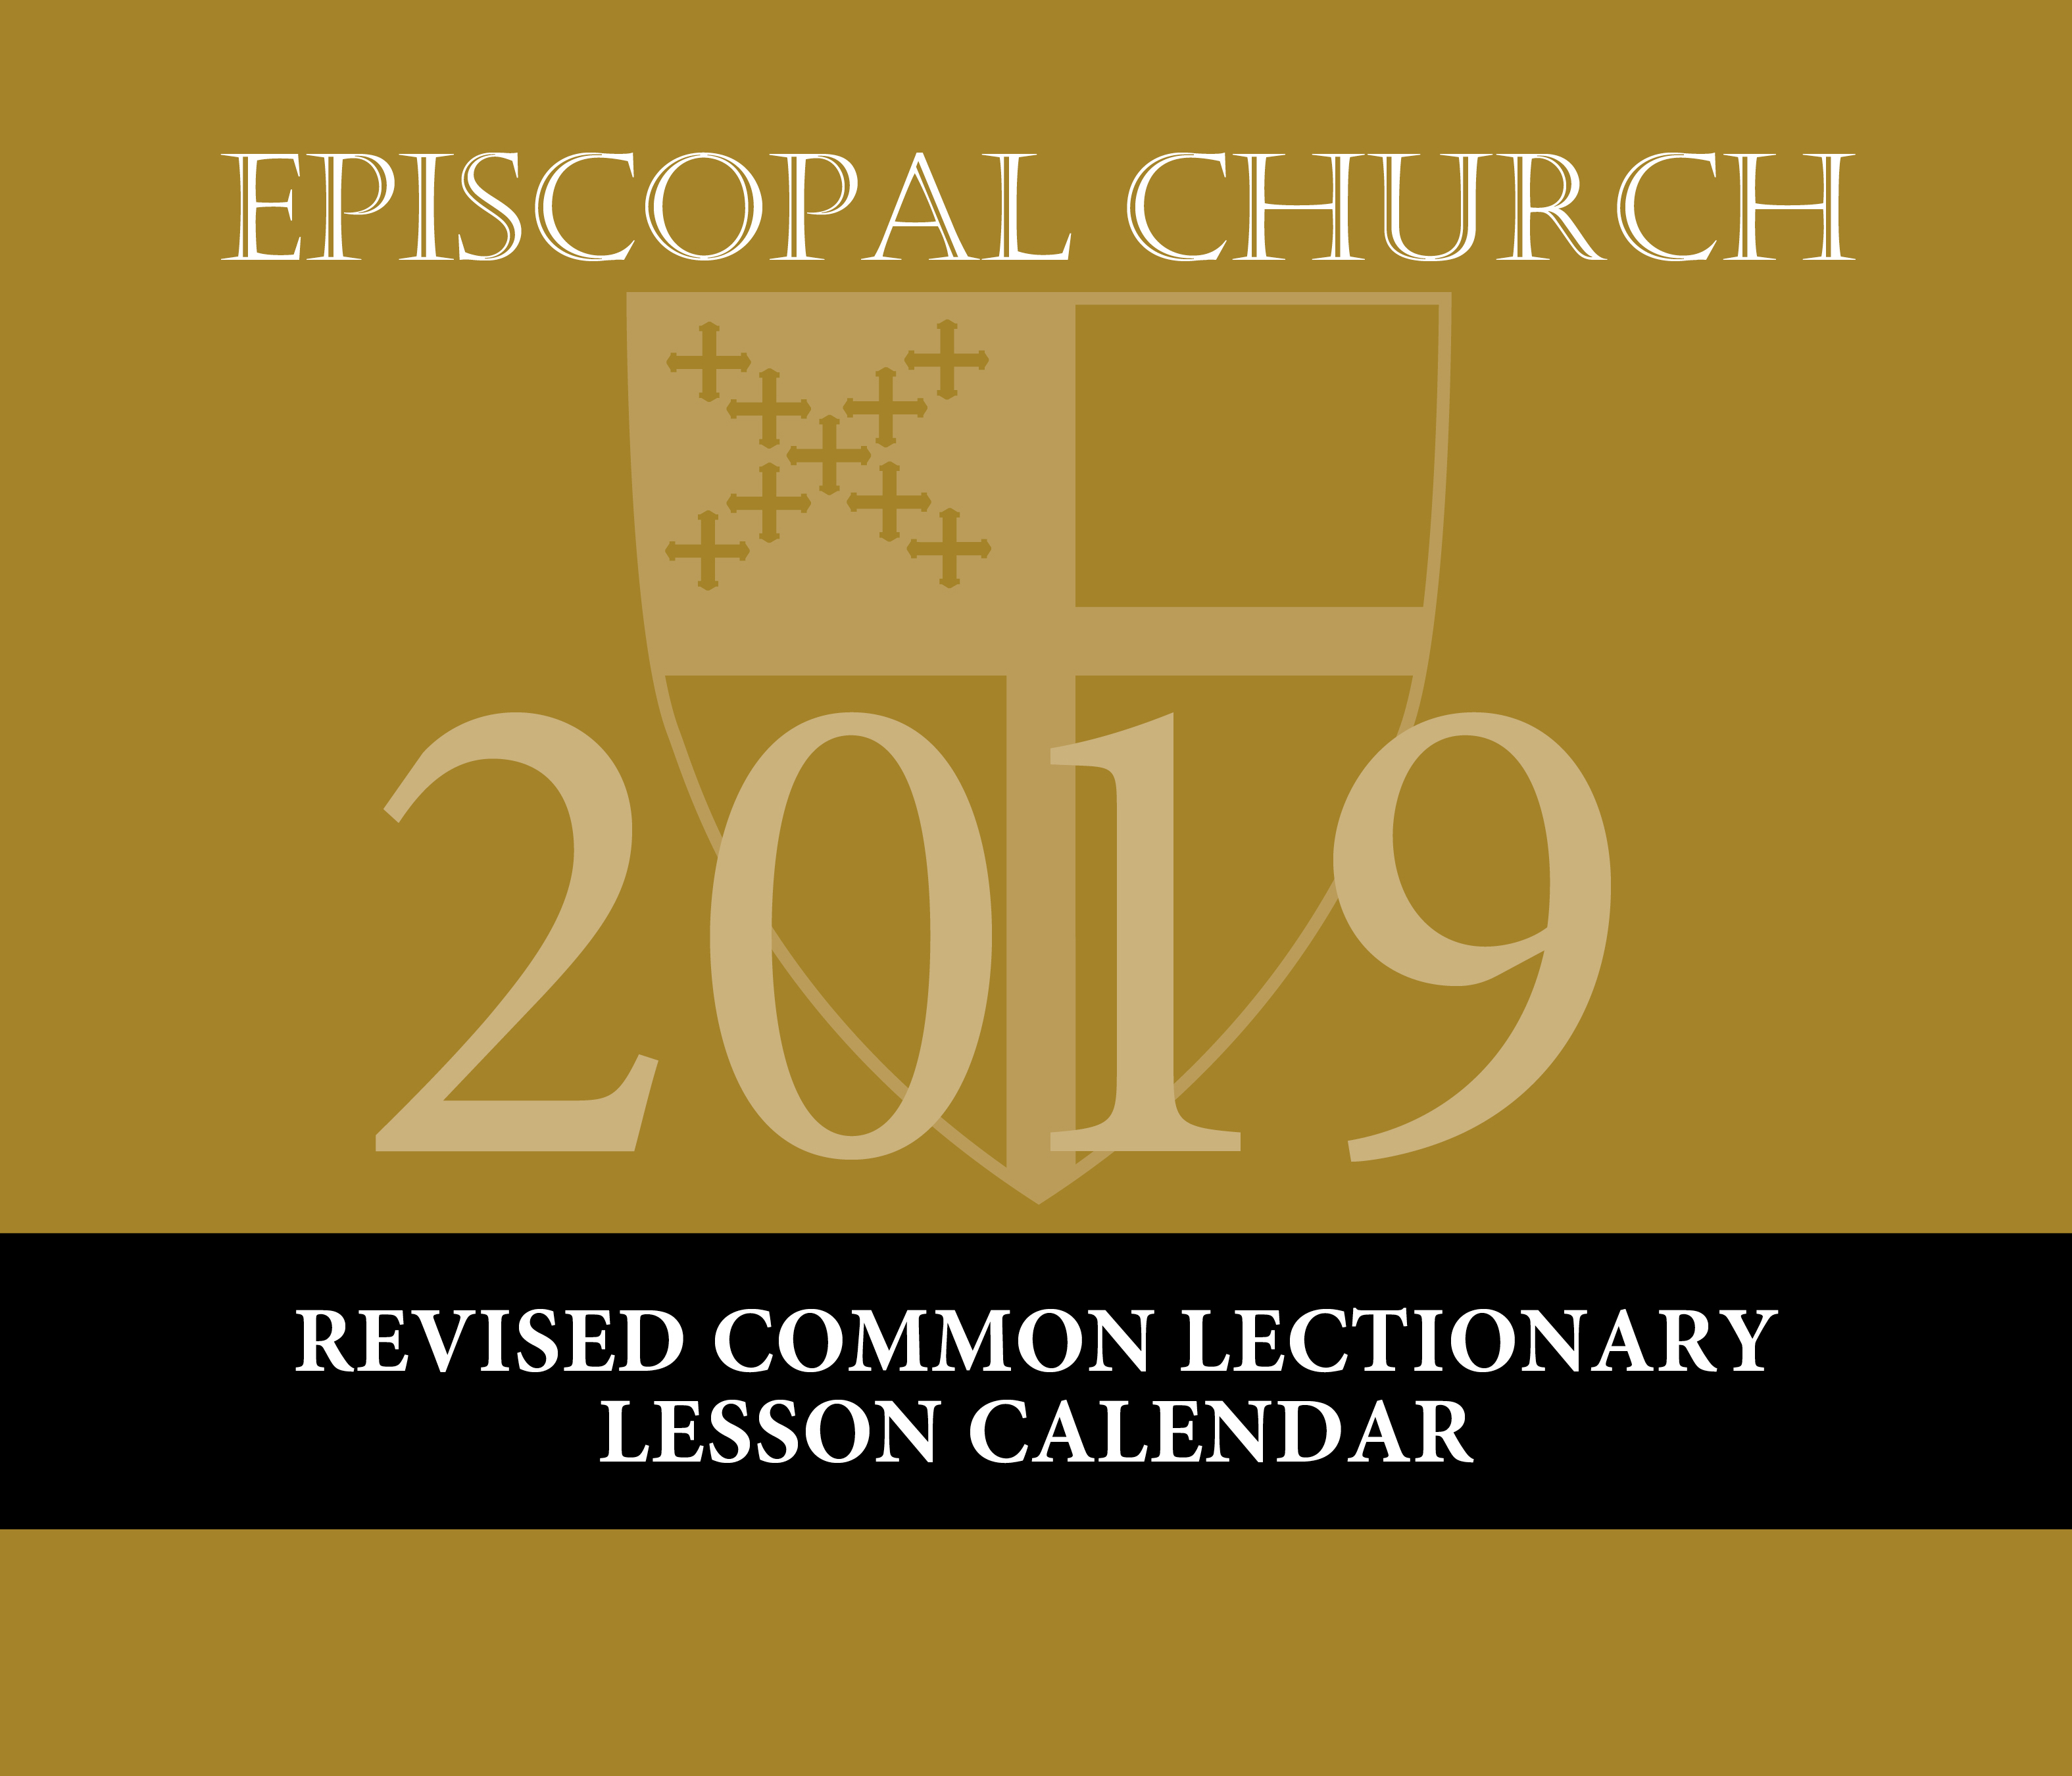 churchpublishingorg episcopal church lesson calendar rcl 2019